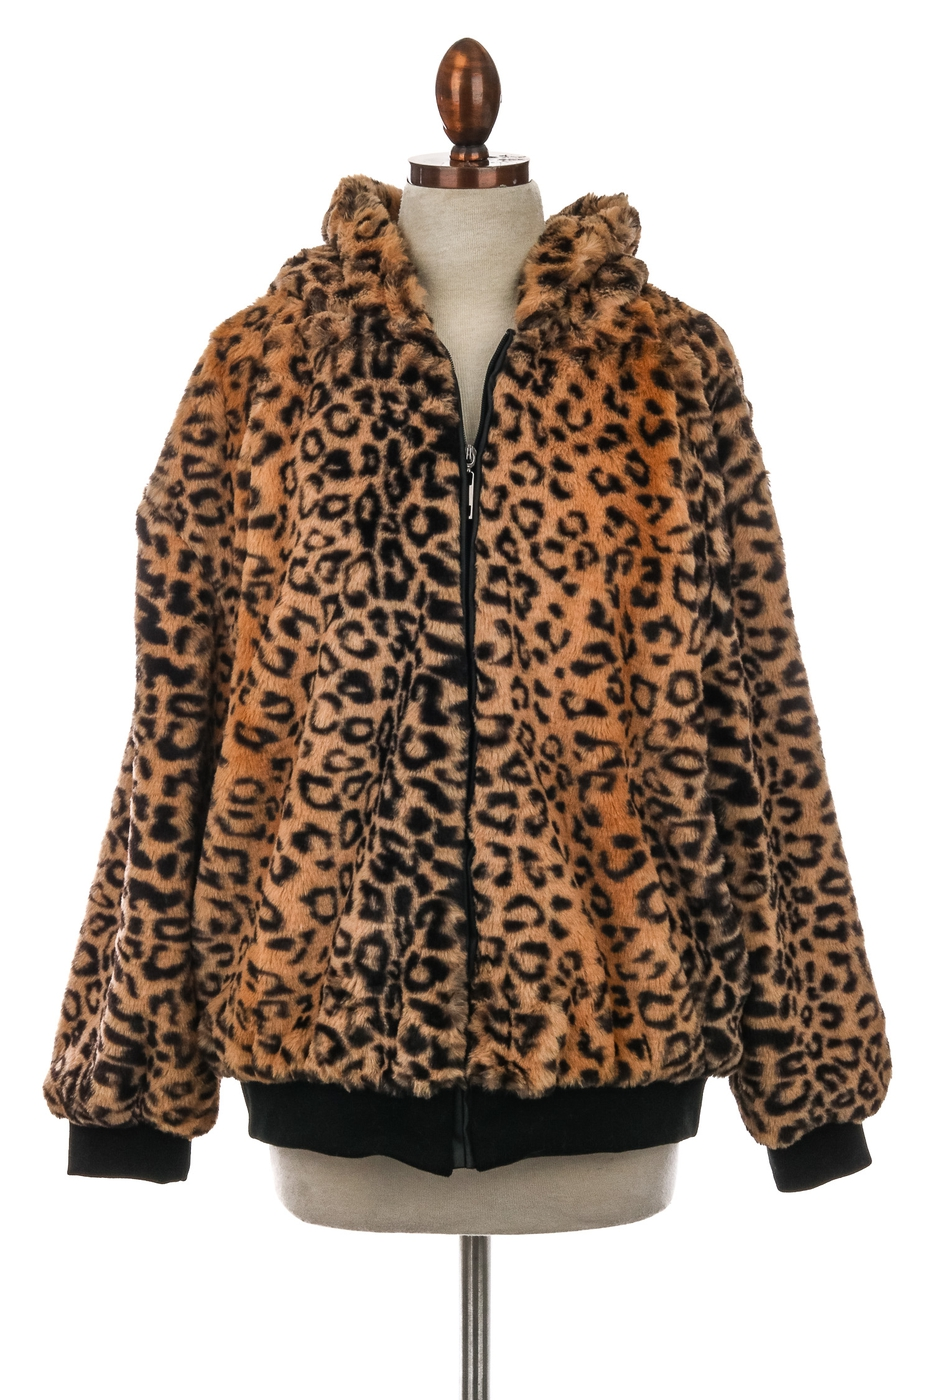 Faux Animal Fur Print Zipper Jacket - orangeshine.com